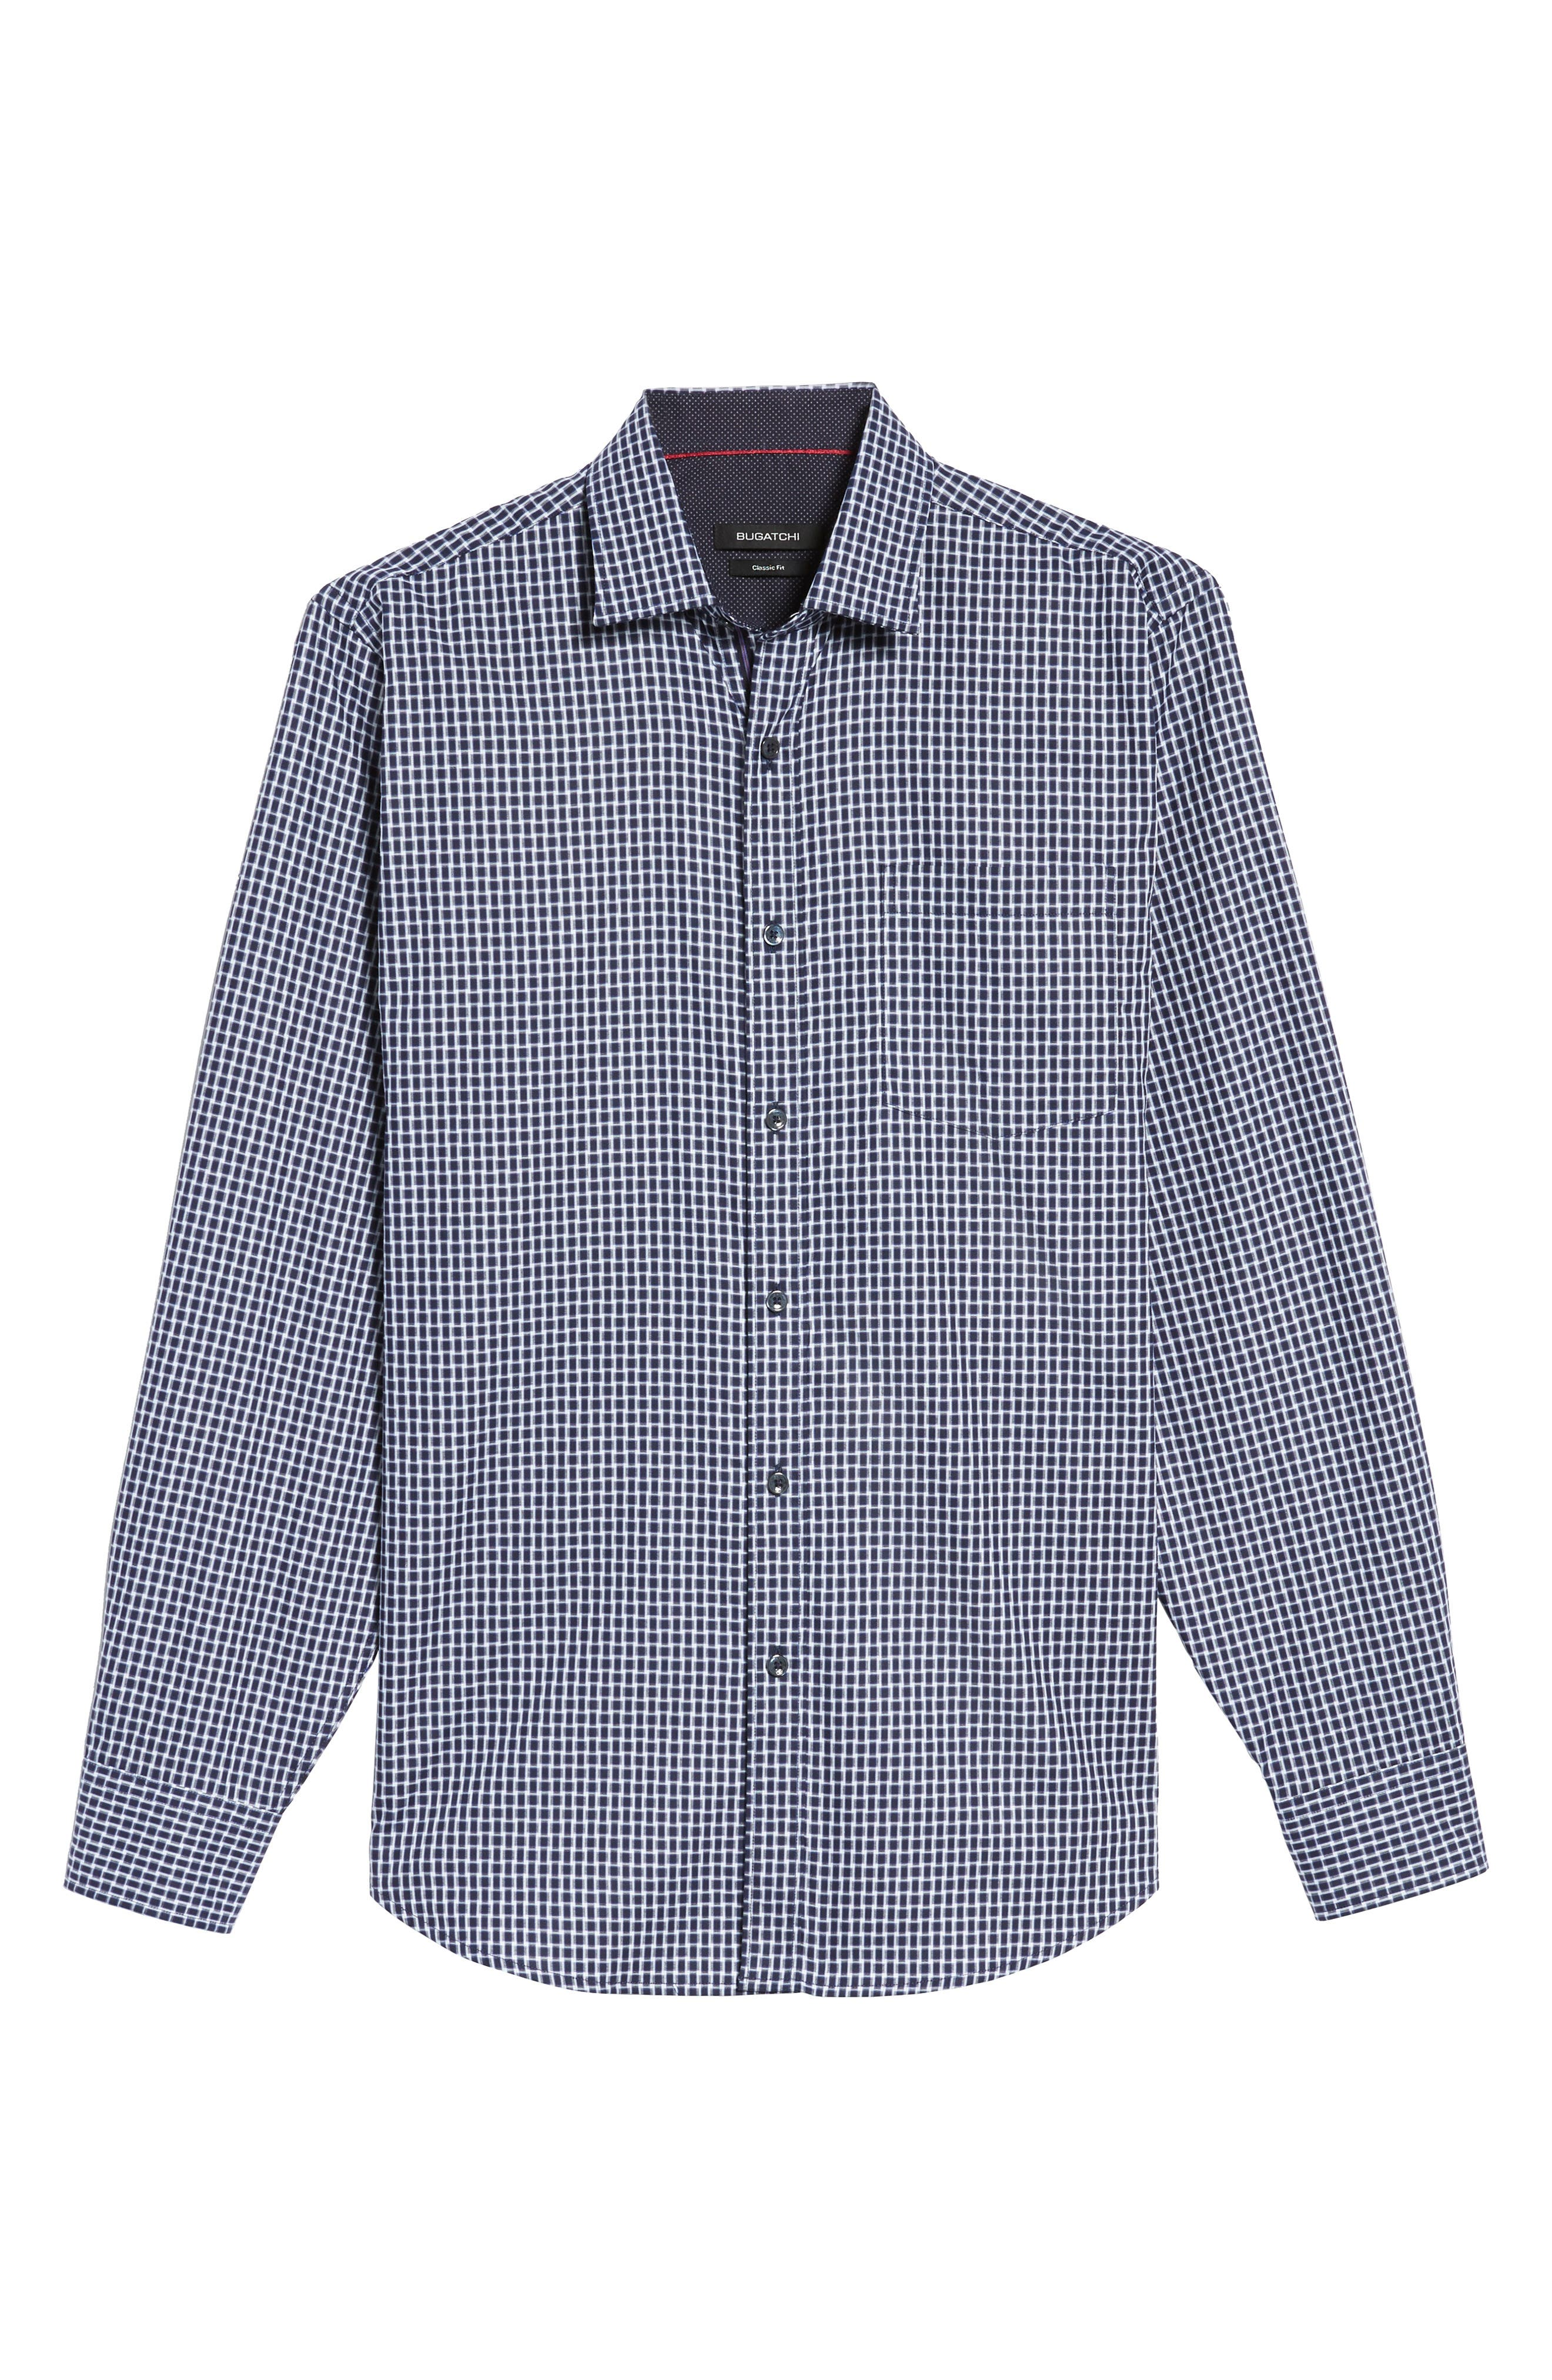 Classic Fit Geo Patterned Sport Shirt,                             Alternate thumbnail 6, color,                             Navy